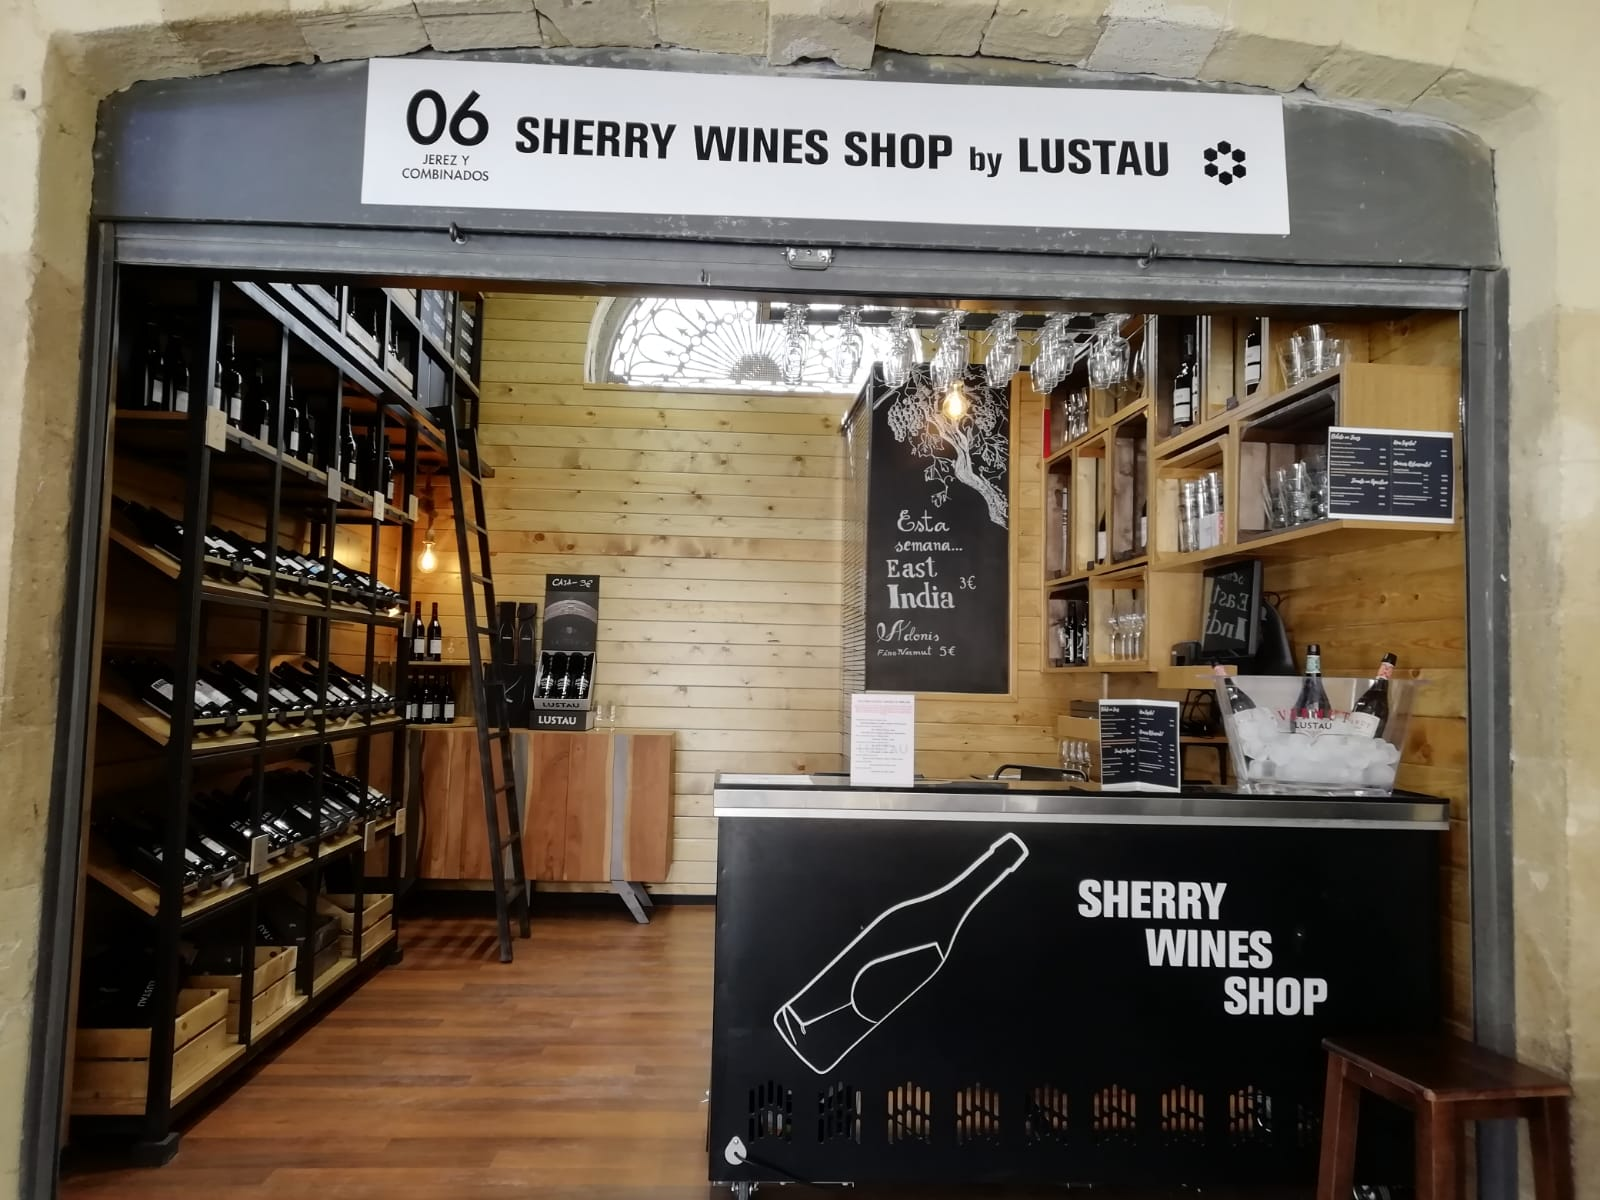 Exterior Sherry Wines Shop